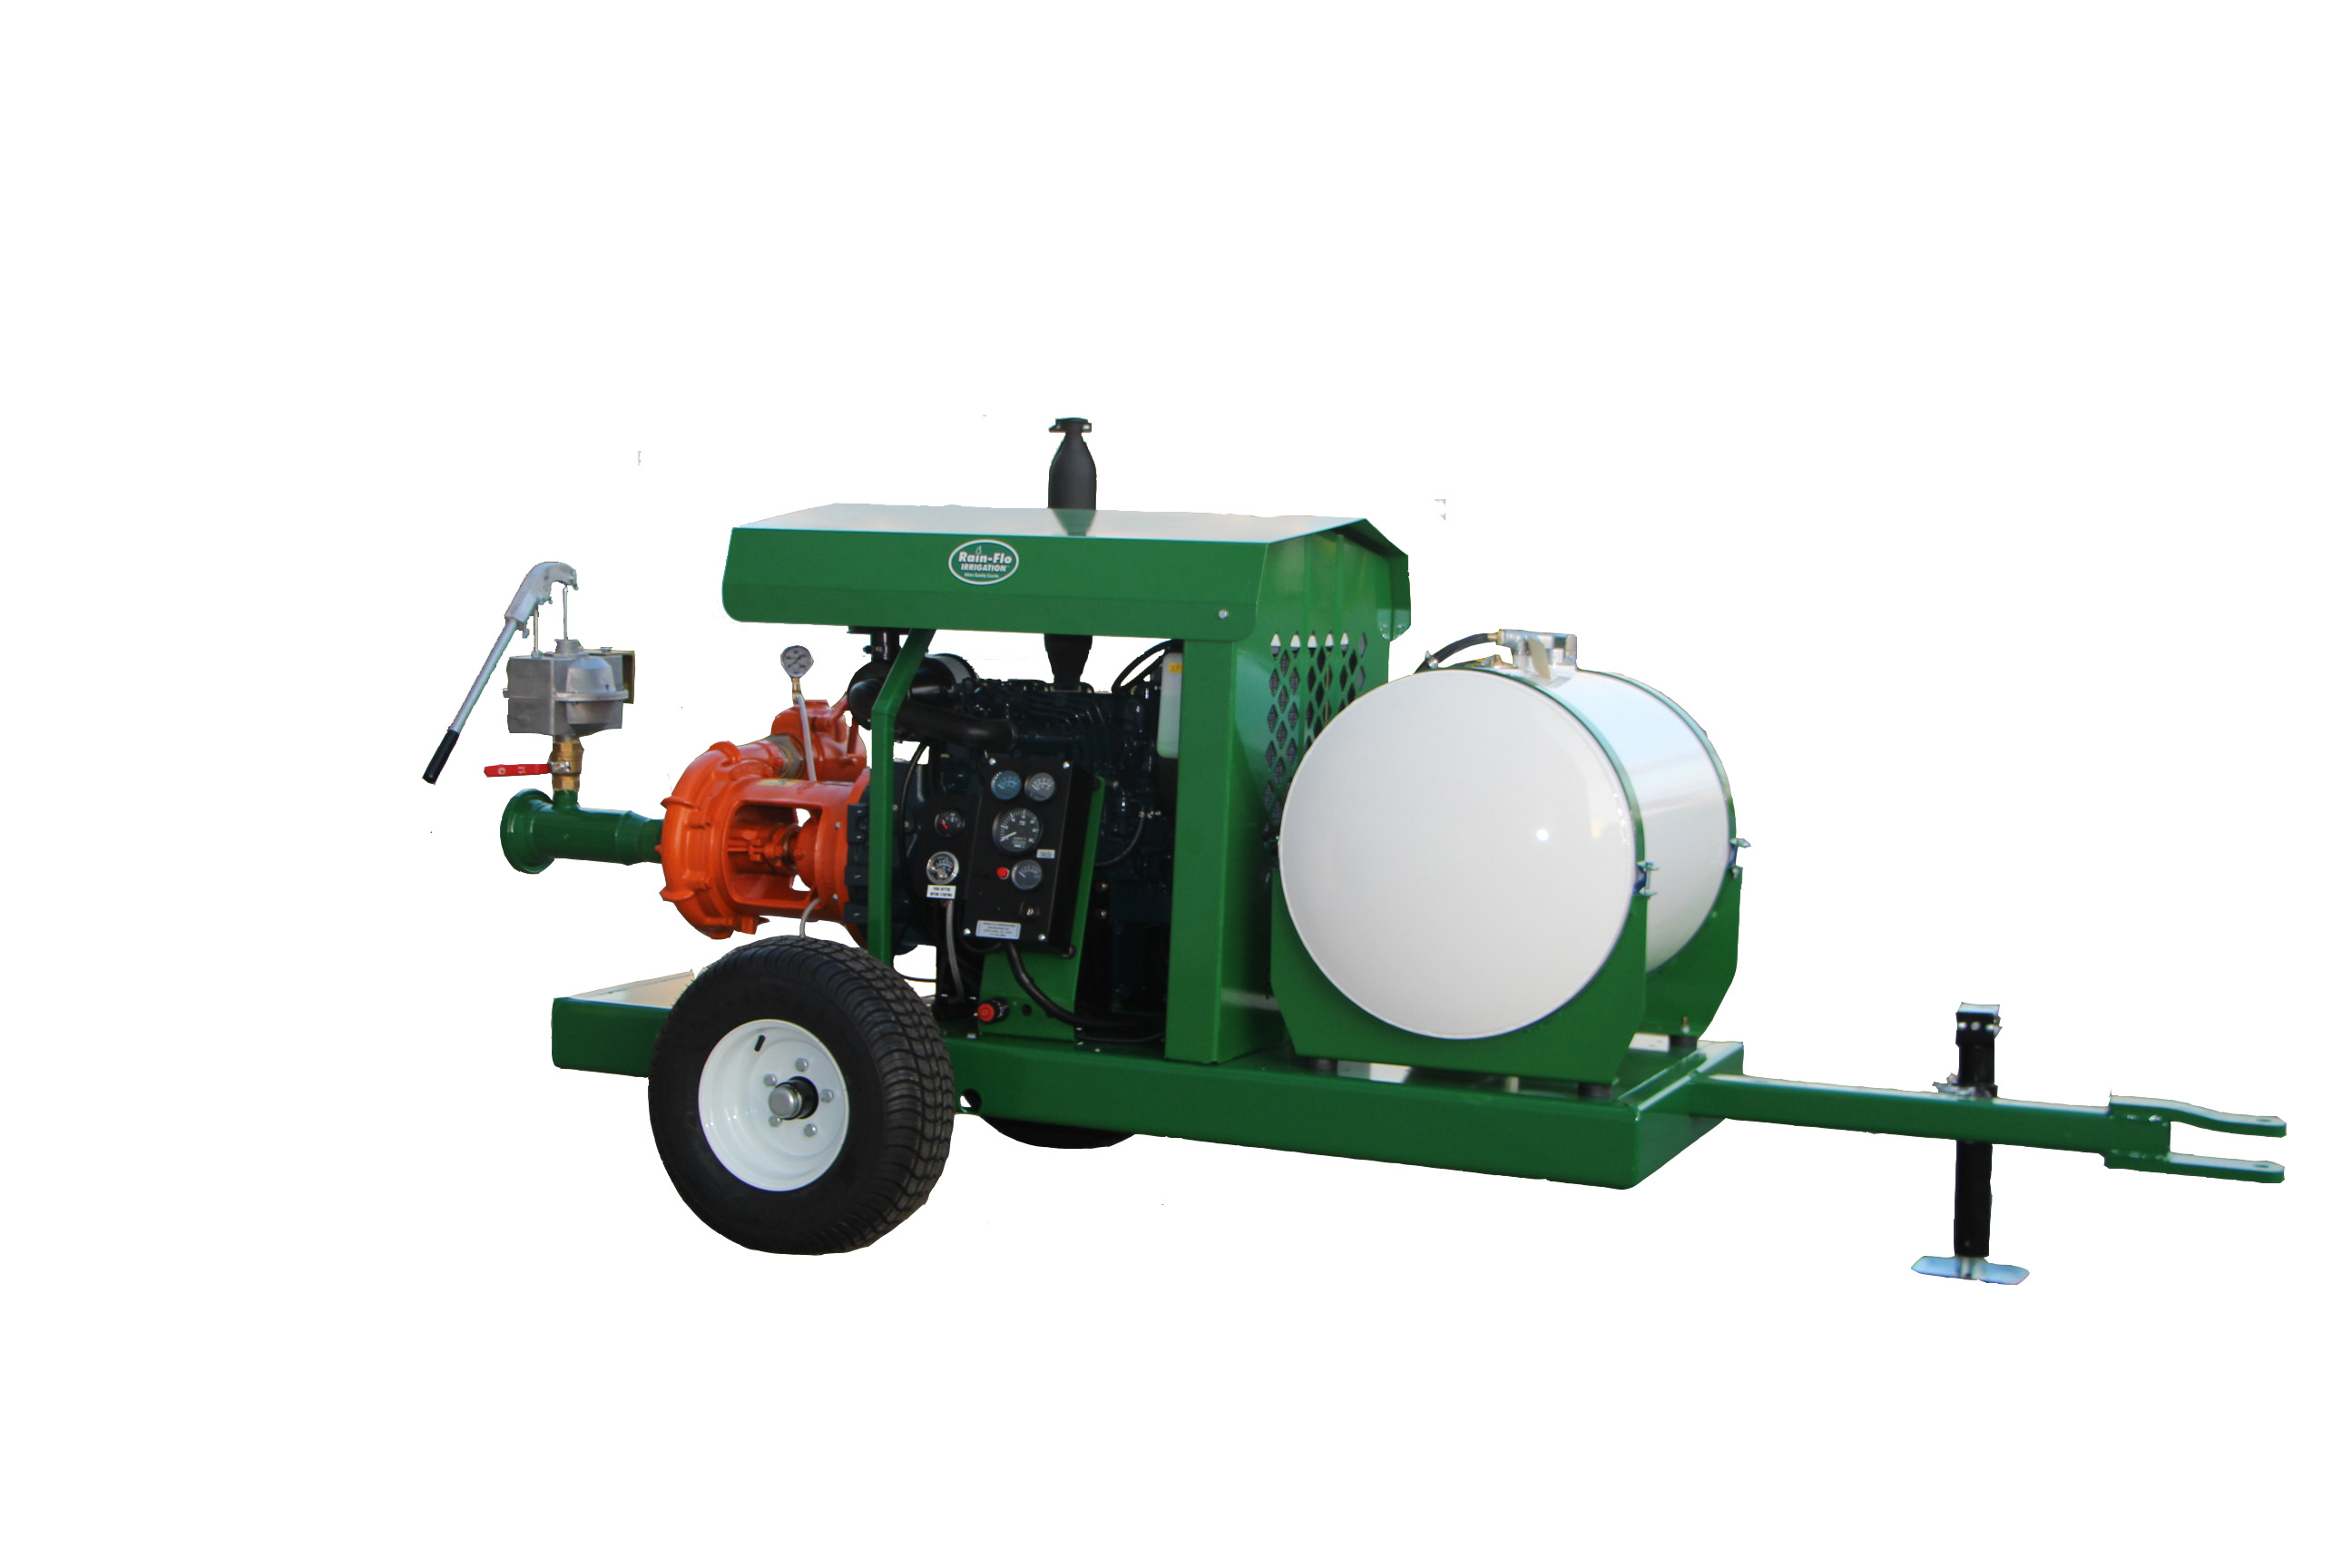 Beautiful ideas of tractor supply water pump best home plans and portable pumps for tractor supply water pump image source rainfloirrigation ccuart Gallery